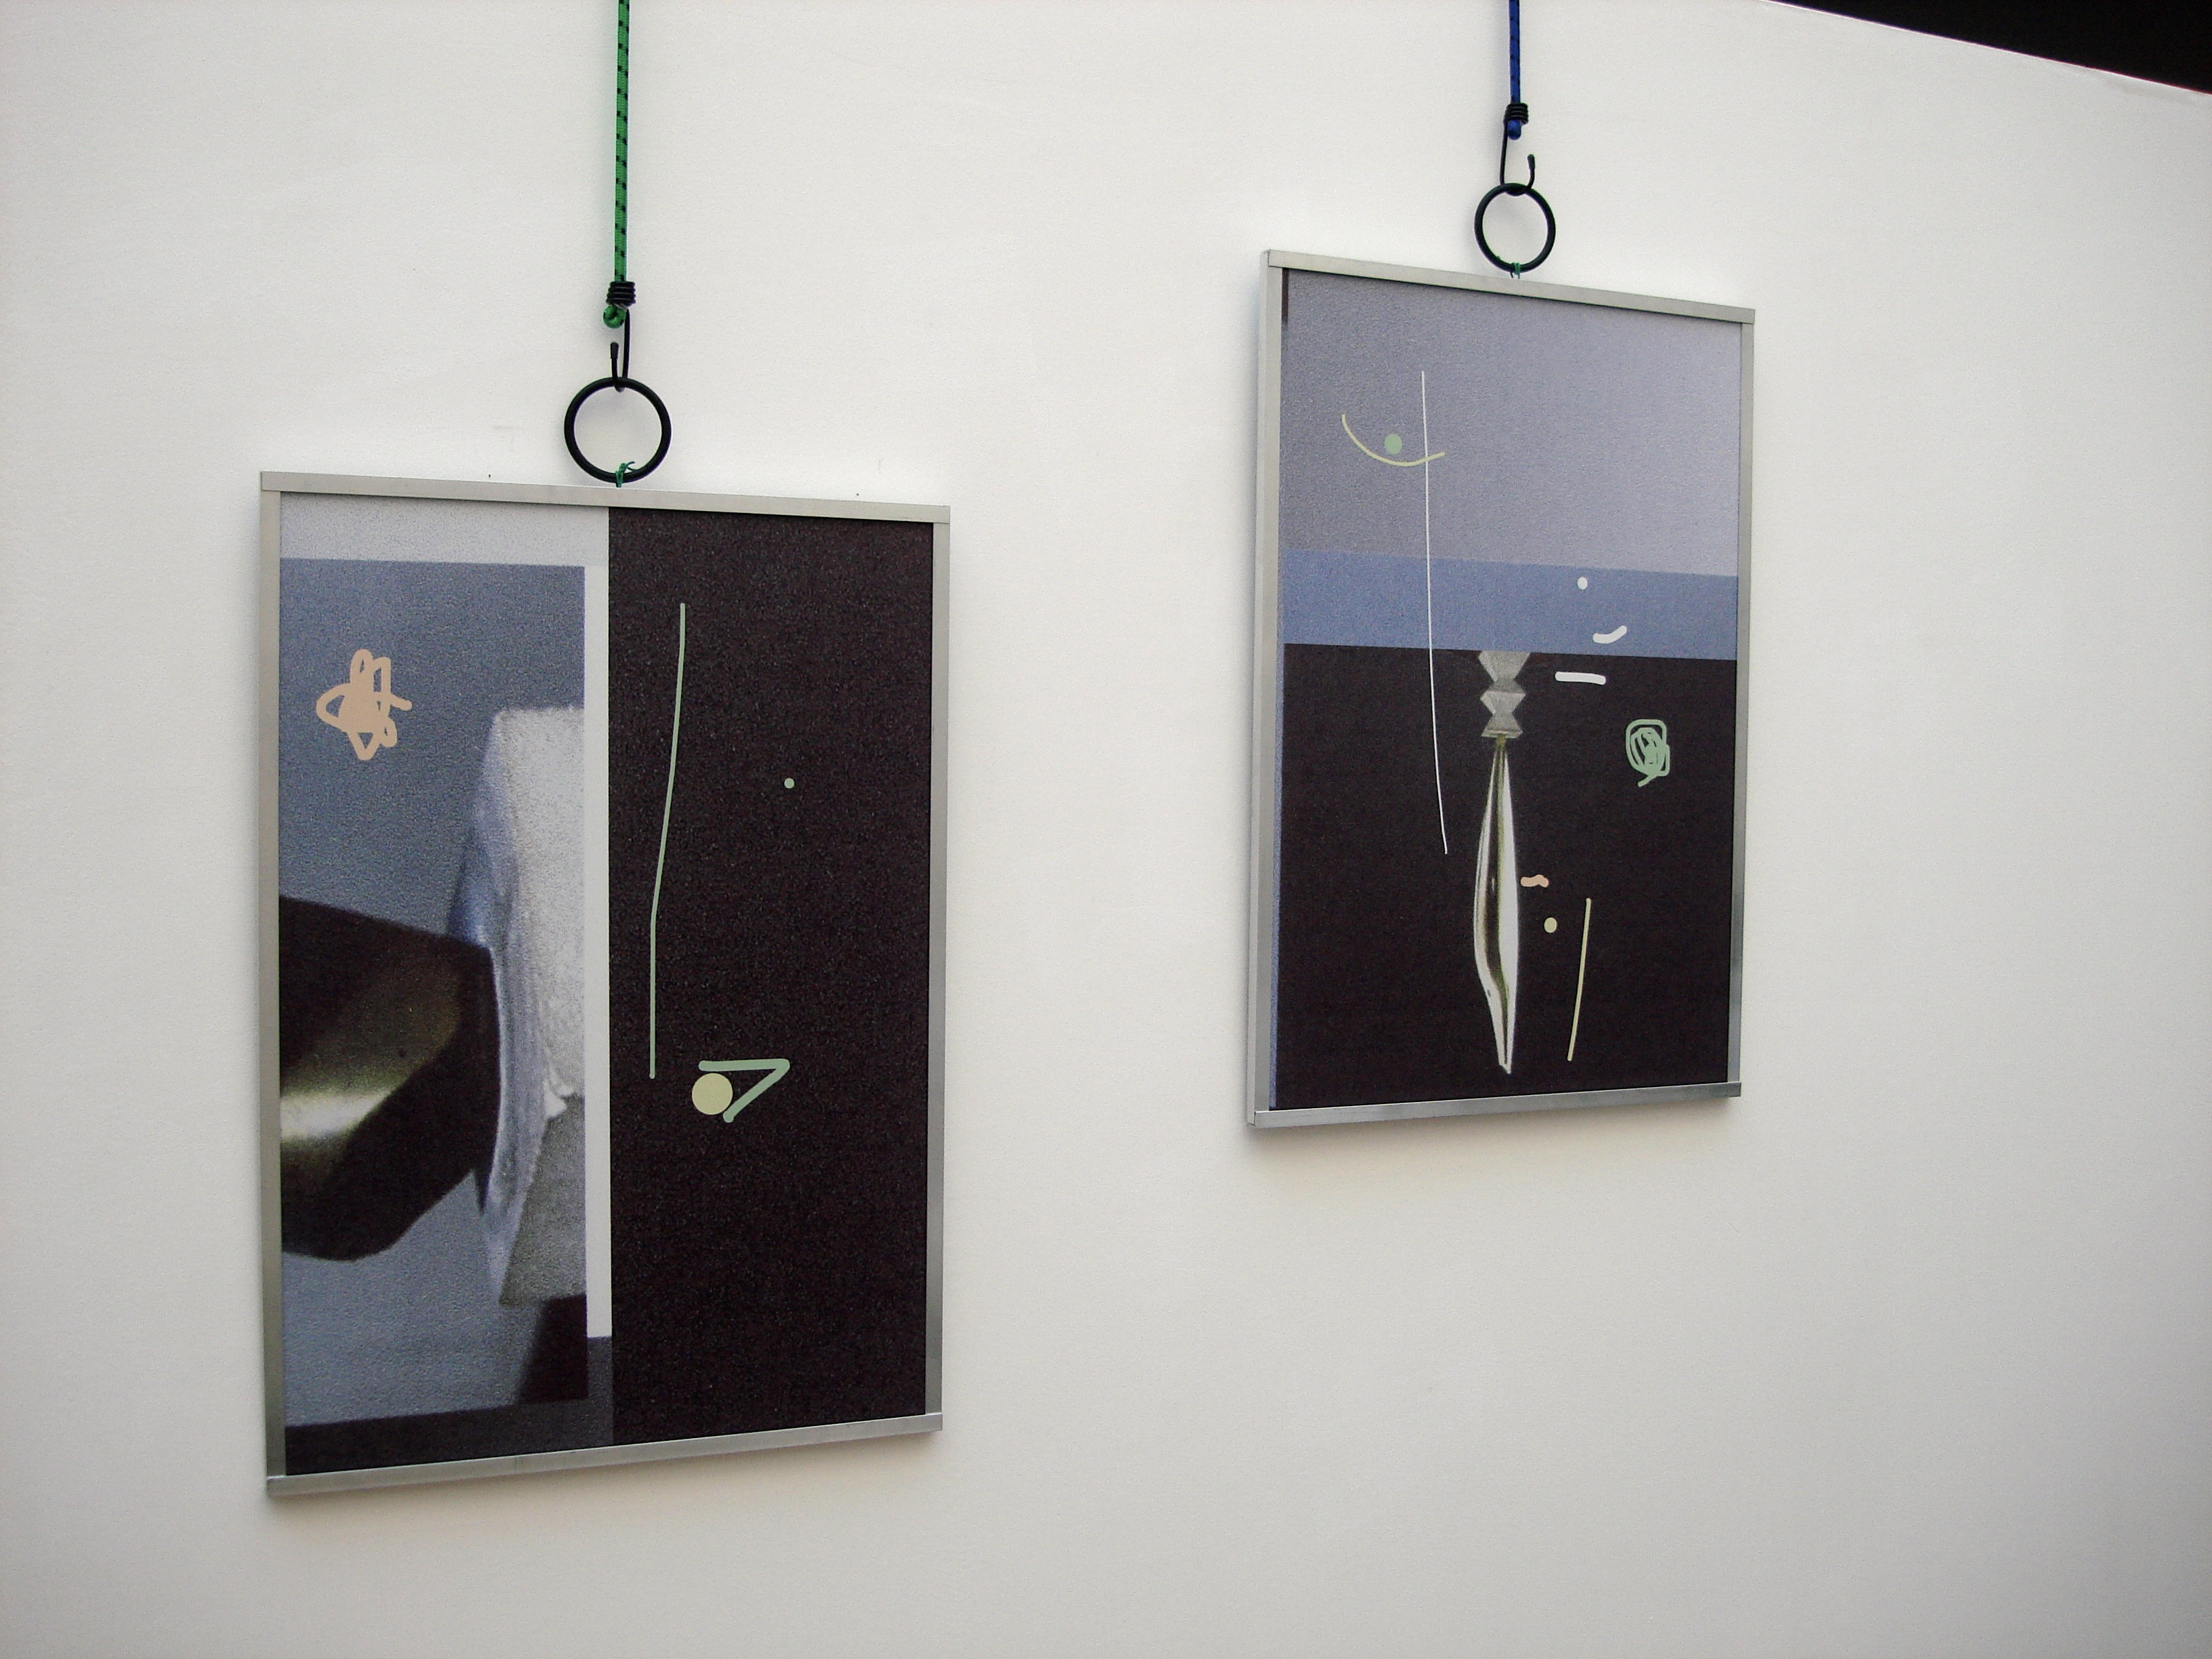 Easy living less is more projects works by james clarkson birds motif  2012 and pogany muse motif  2012 original